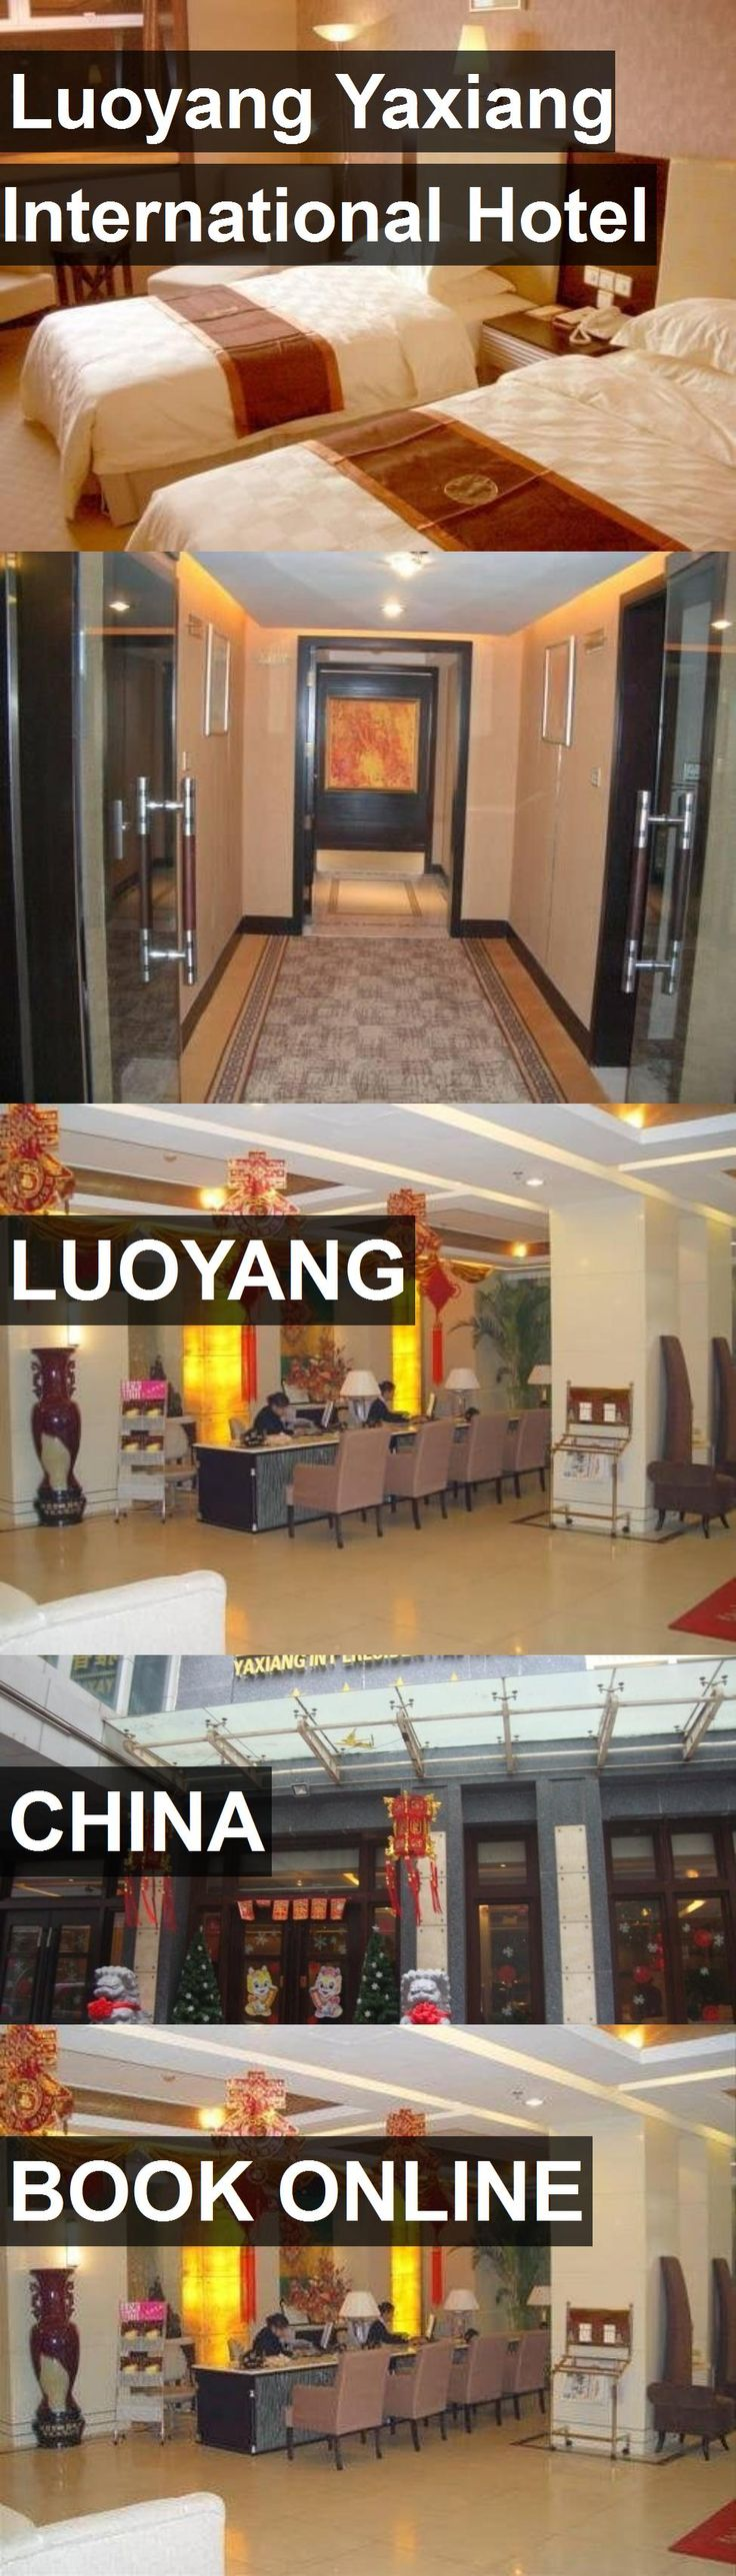 Luoyang Yaxiang International Hotel in Luoyang, China. For more information, photos, reviews and best prices please follow the link. #China #Luoyang #travel #vacation #hotel